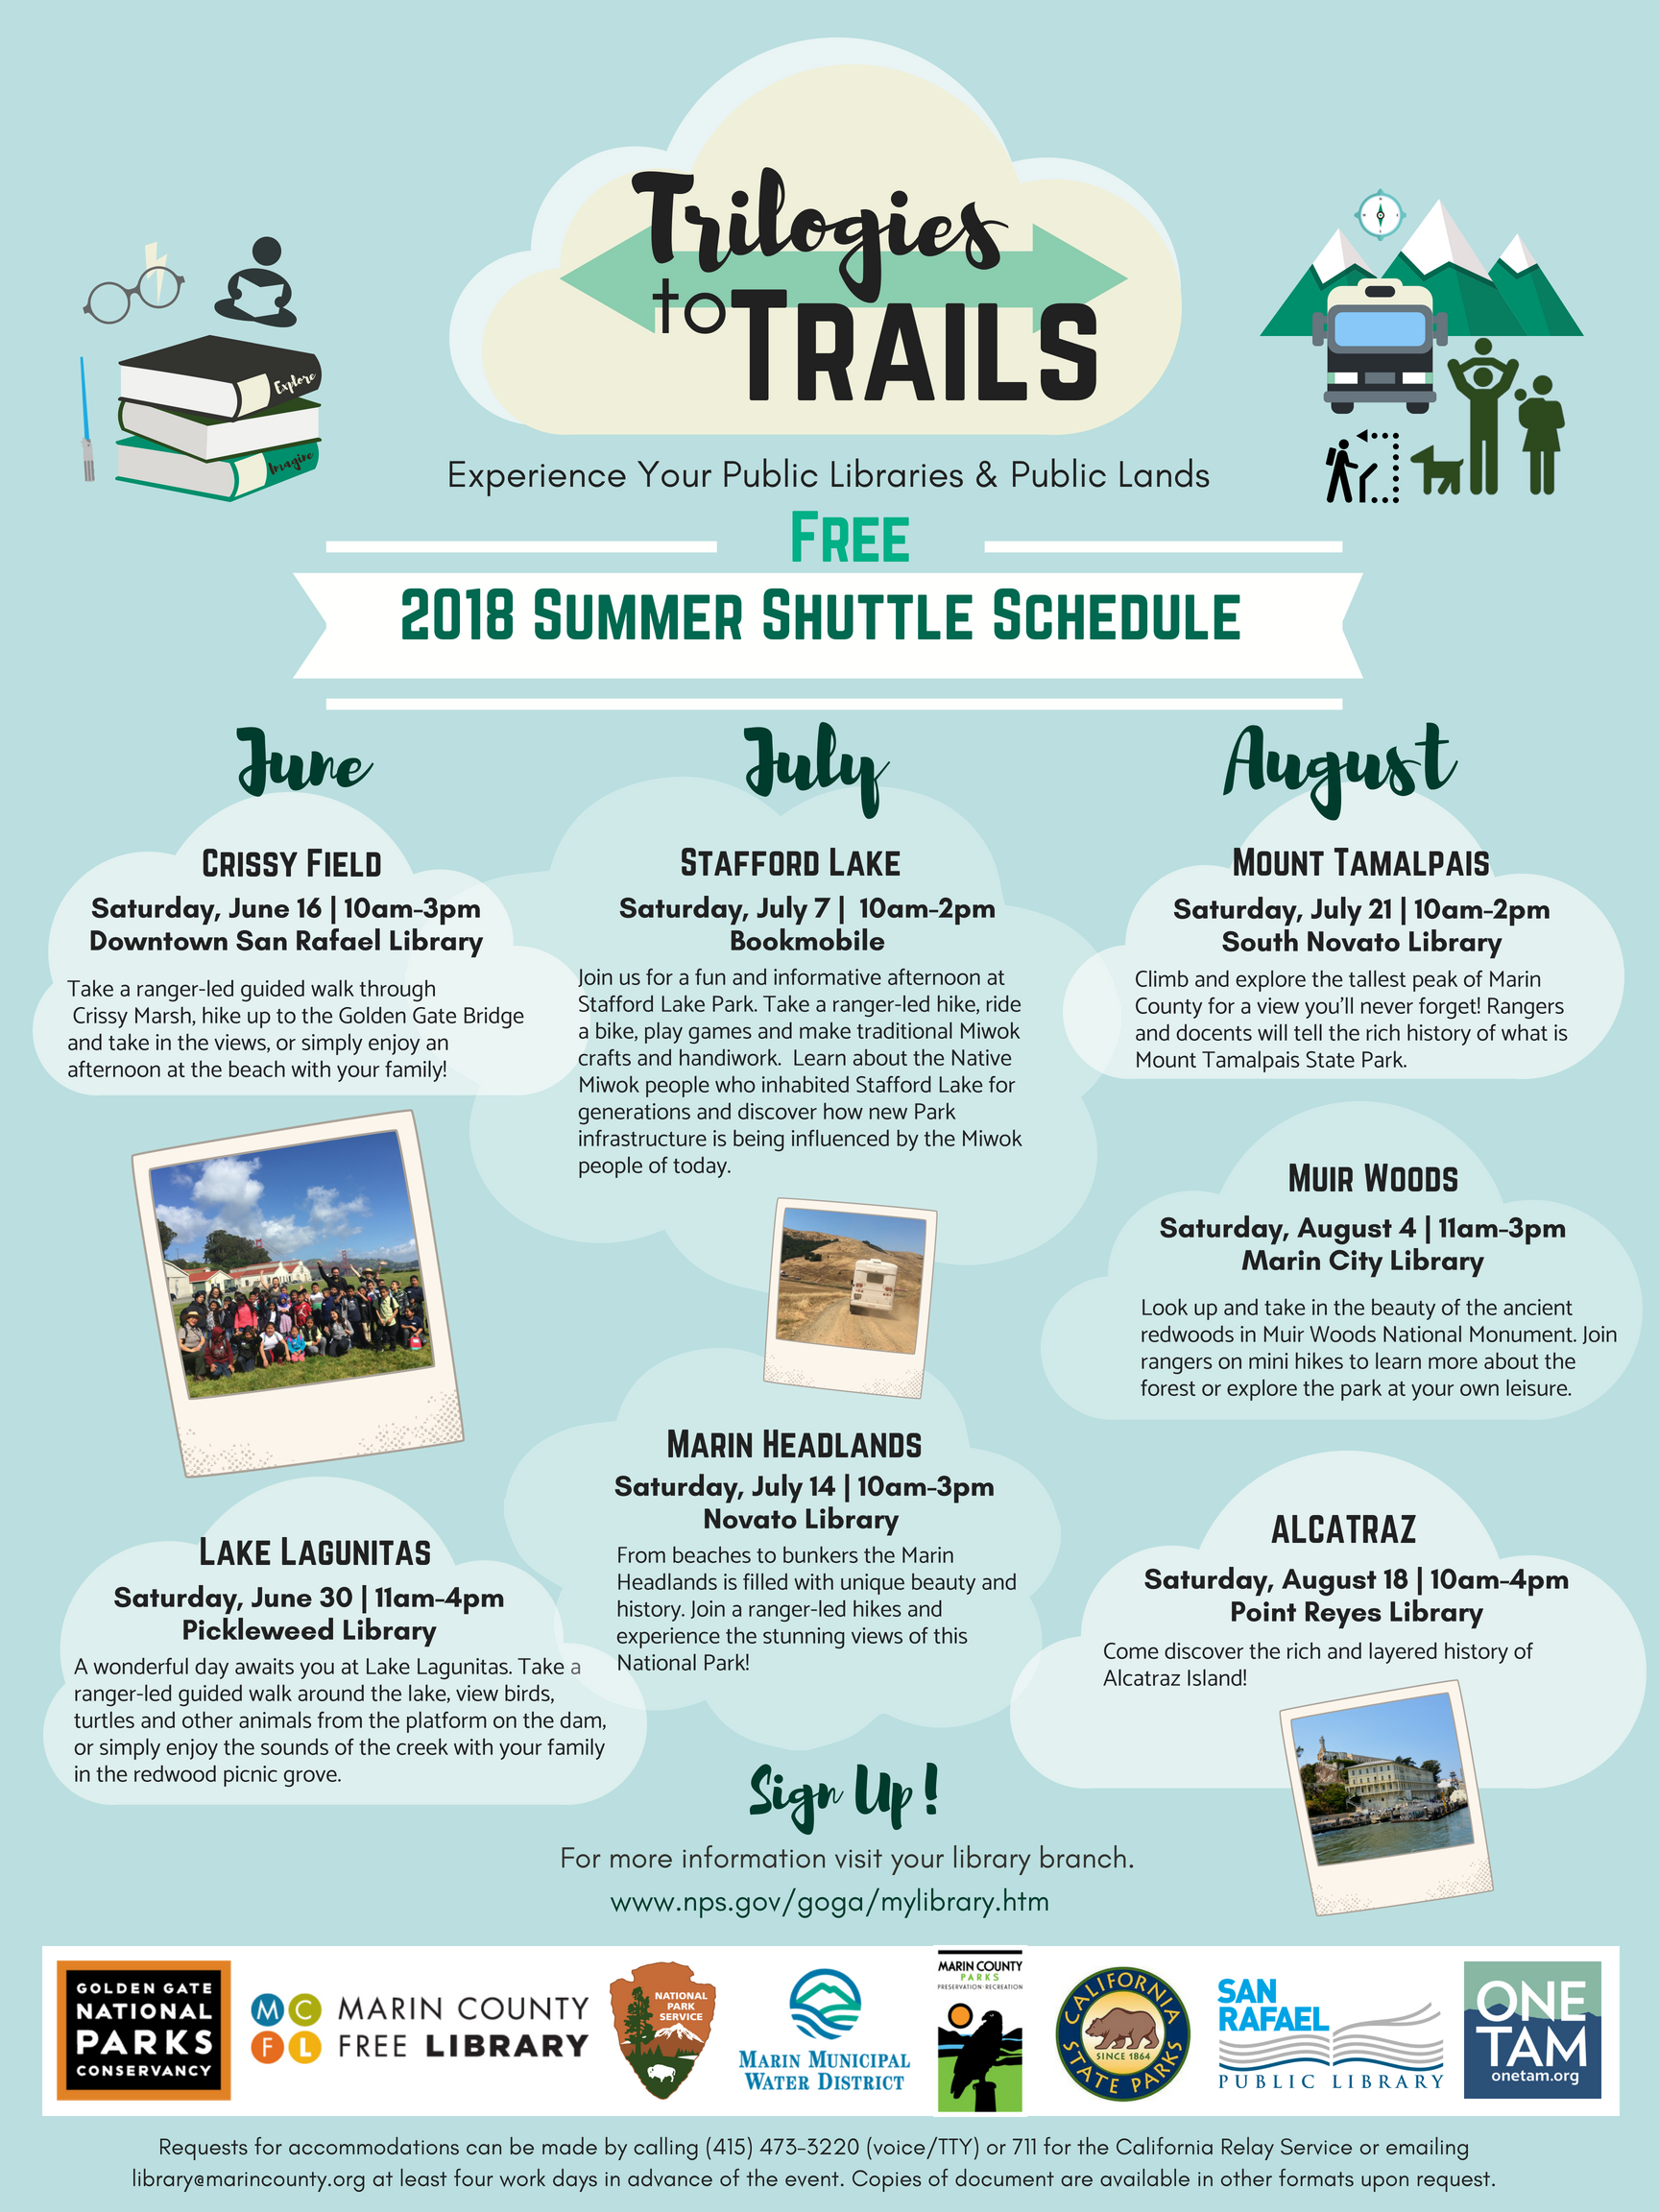 Program flier for Trilogies to Trails